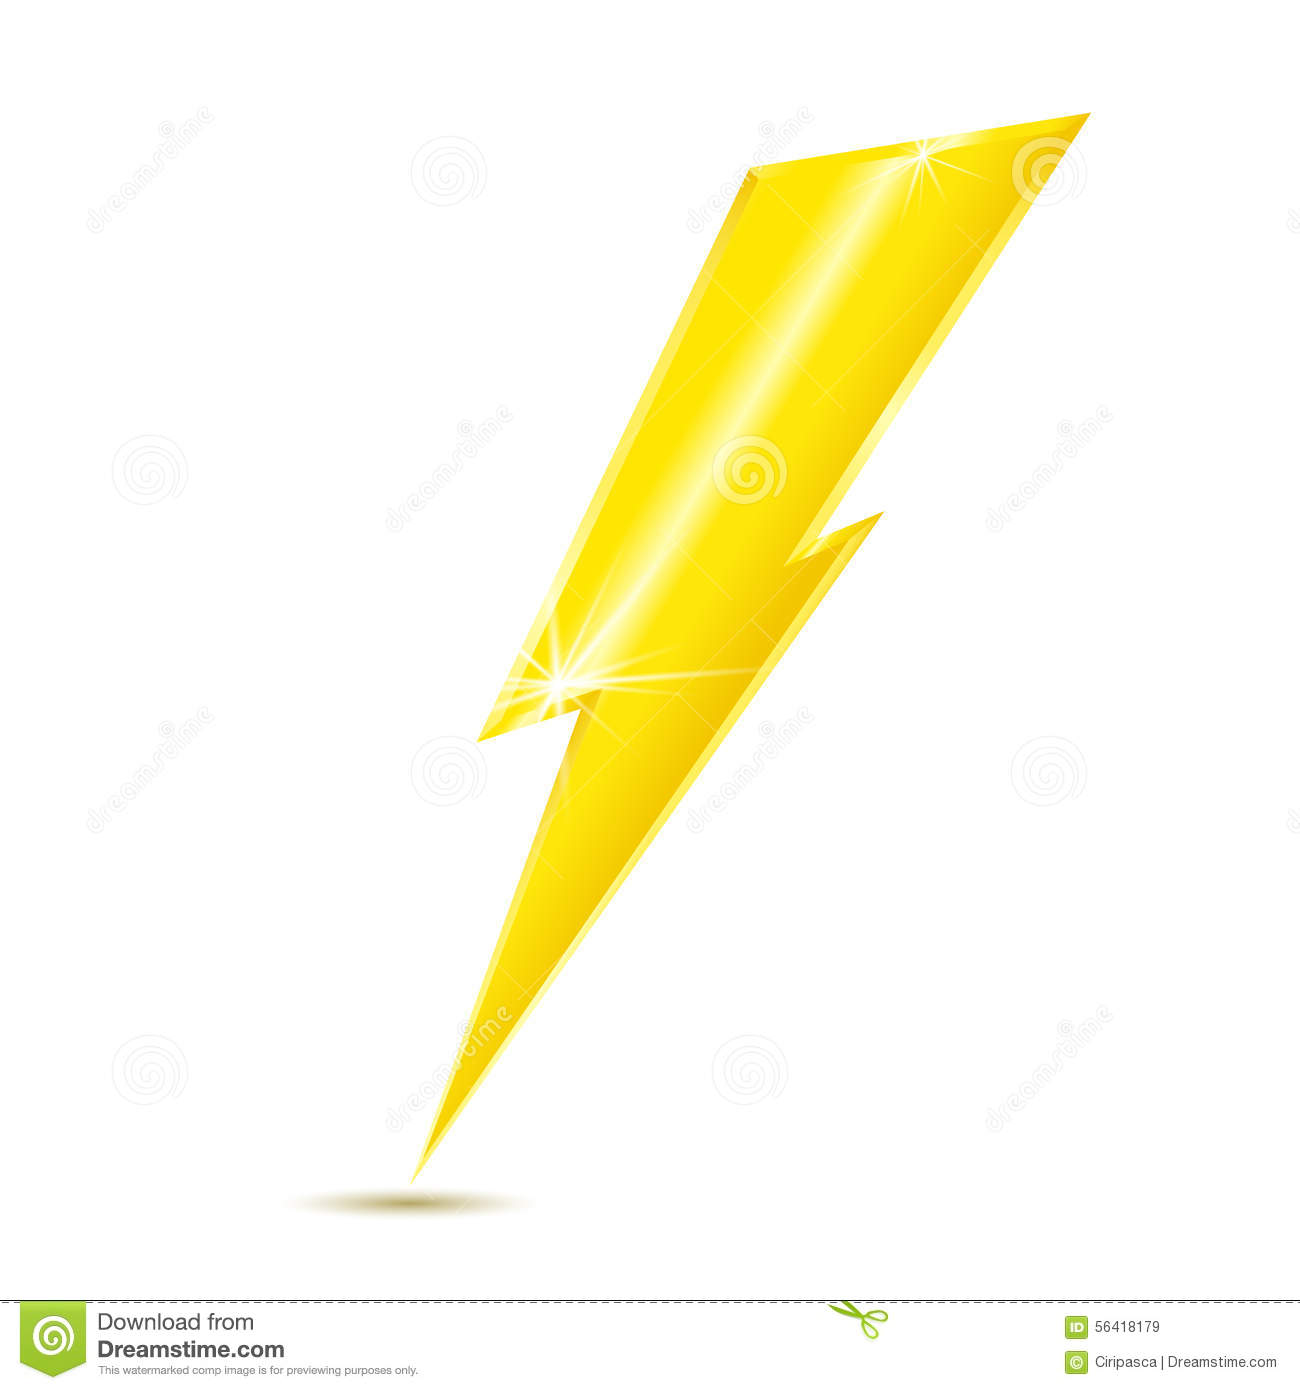 Lightning Bolt Icon Isolated On White Background Stock Vector ... for Vector Lighting Bolt  192sfw